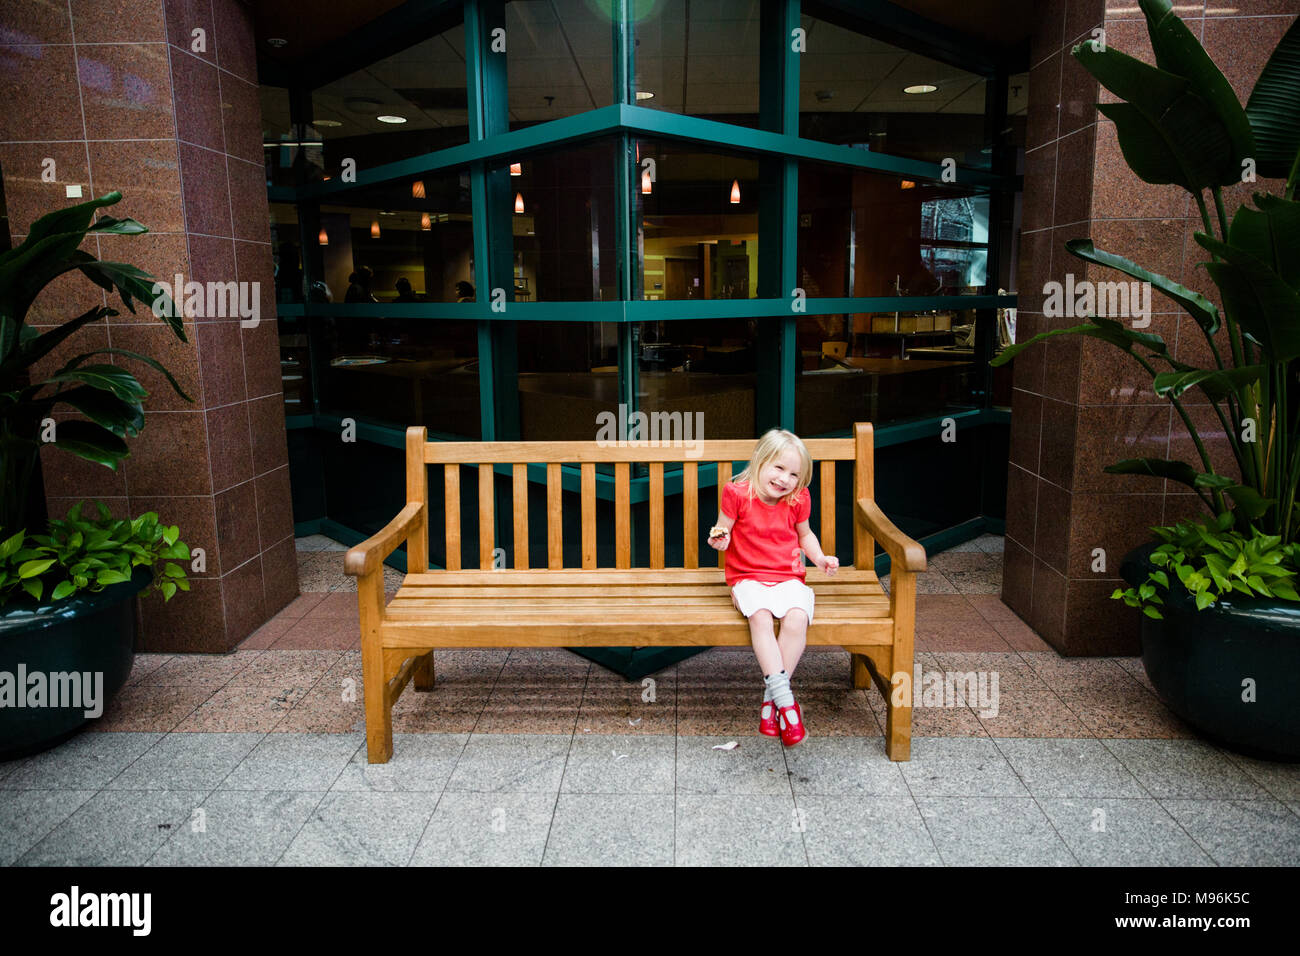 Girl in red shirt sitting on wooden bench - Stock Image